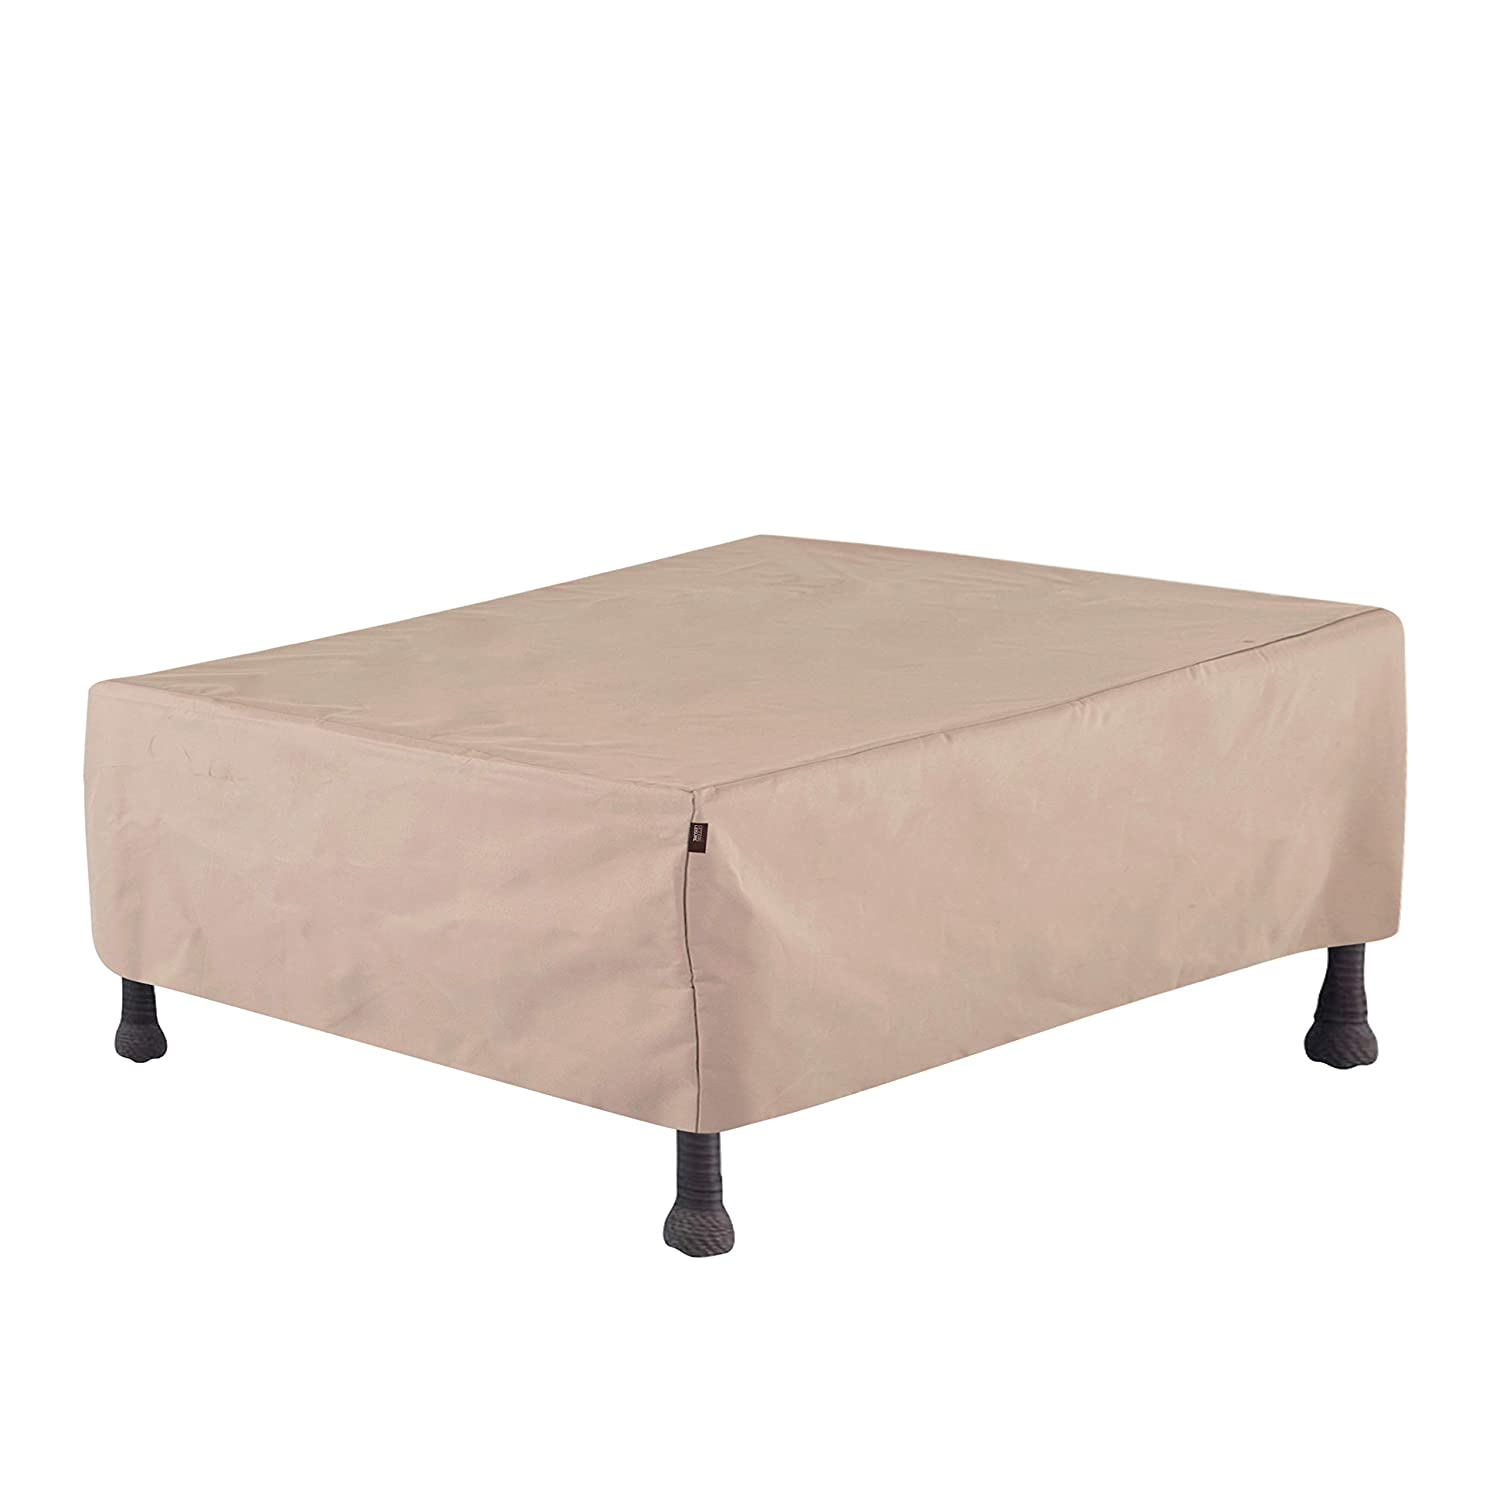 Modern Leisure 2928 Chalet Patio Coffee Table/Ottoman, Outdoor Cover (48 L x 25 D x 18 H inches) Water-Resistant, Khaki/Fossil